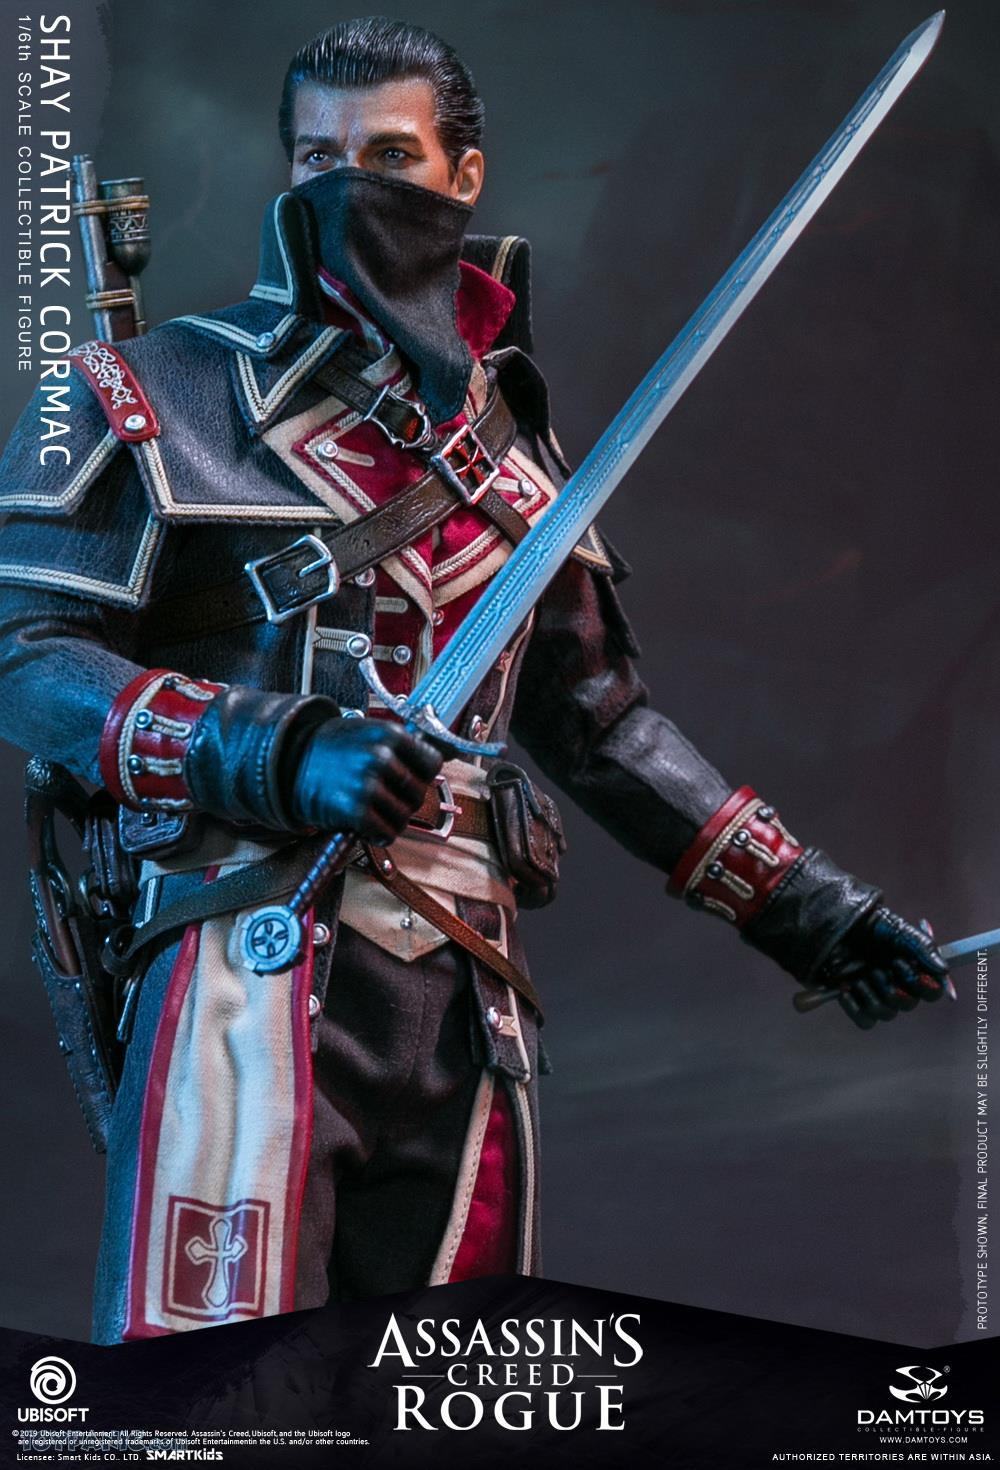 male - NEW PRODUCT: DAMTOYS: Assassins Creed Rogue - 1/6th scale Shay Patrick Cormac Collectible Figure 82220115